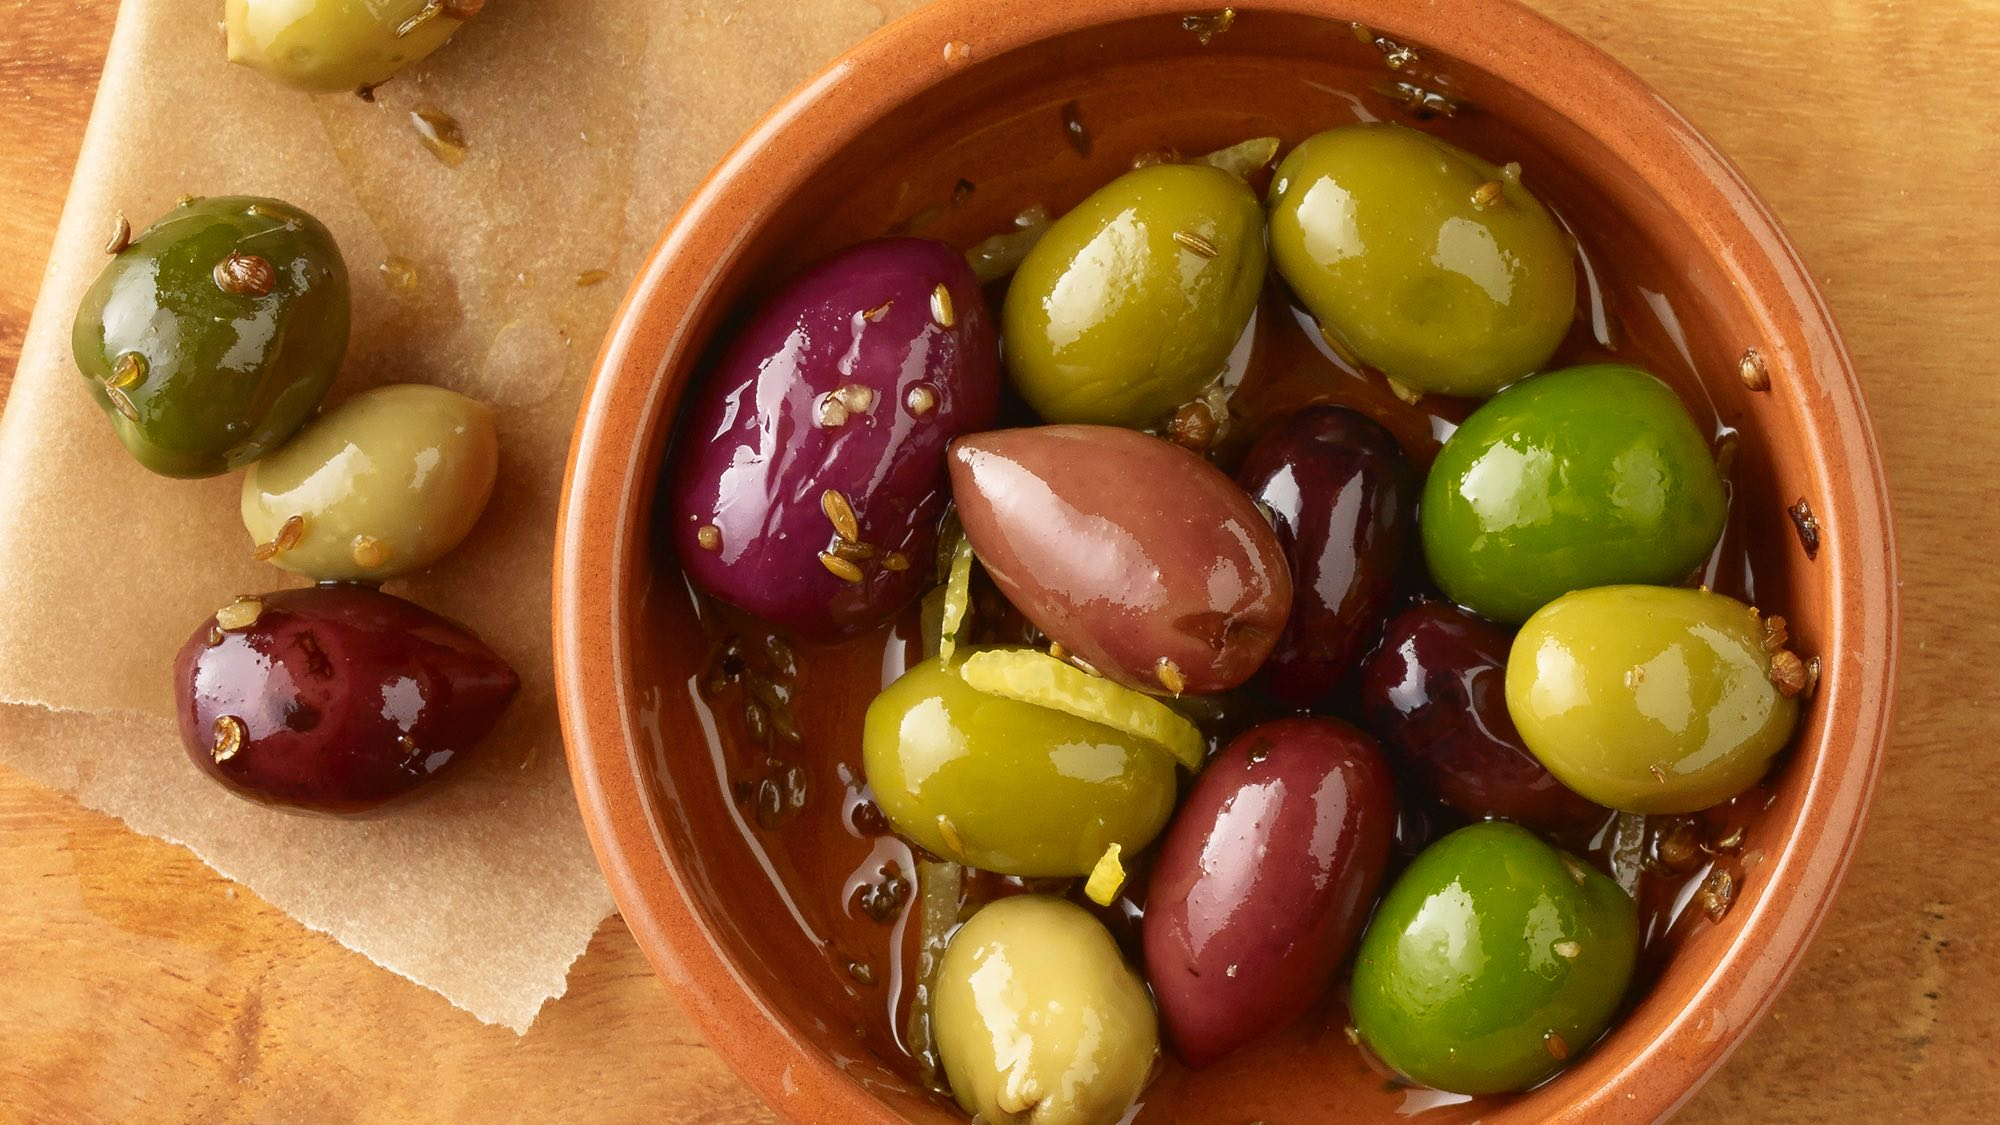 cumin-and-coriander-marinated-olives.jpg